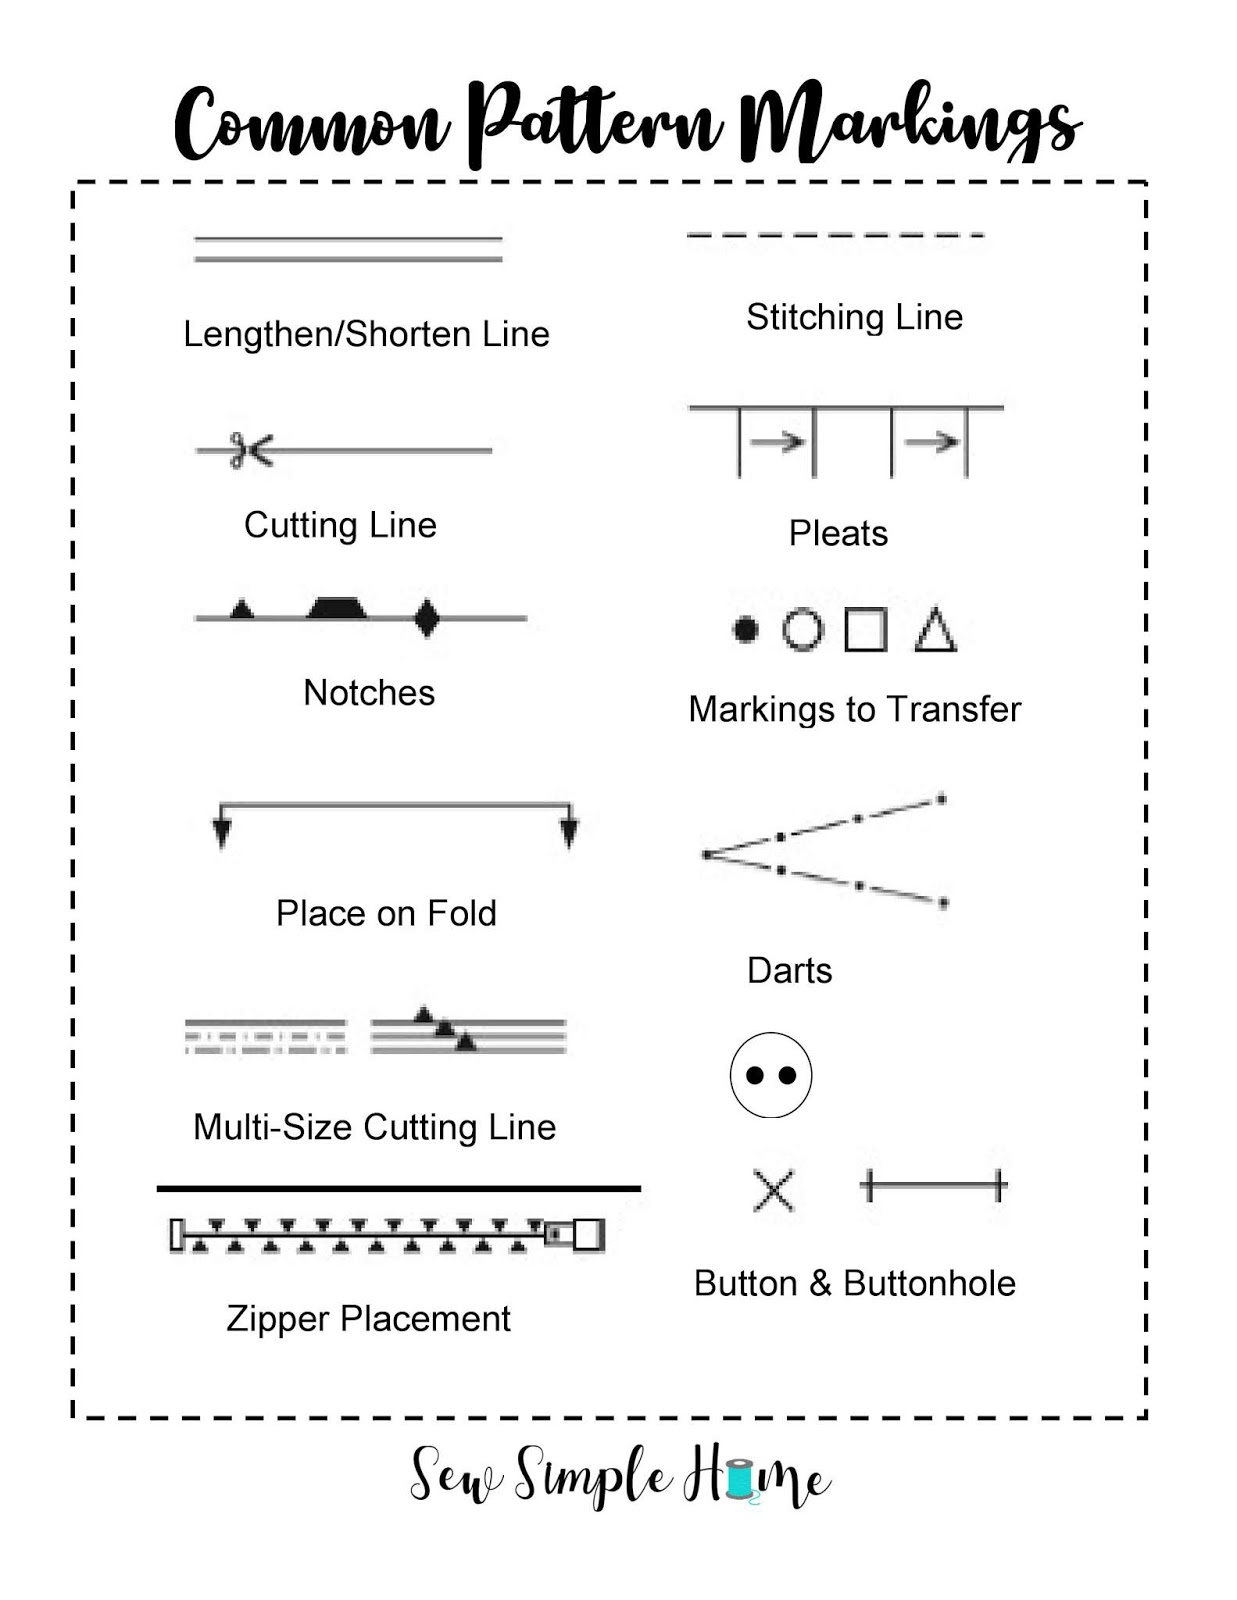 How To Read A Pattern : pattern, Sewing, Pattern, Fabric, Layout, Cutting, Simple